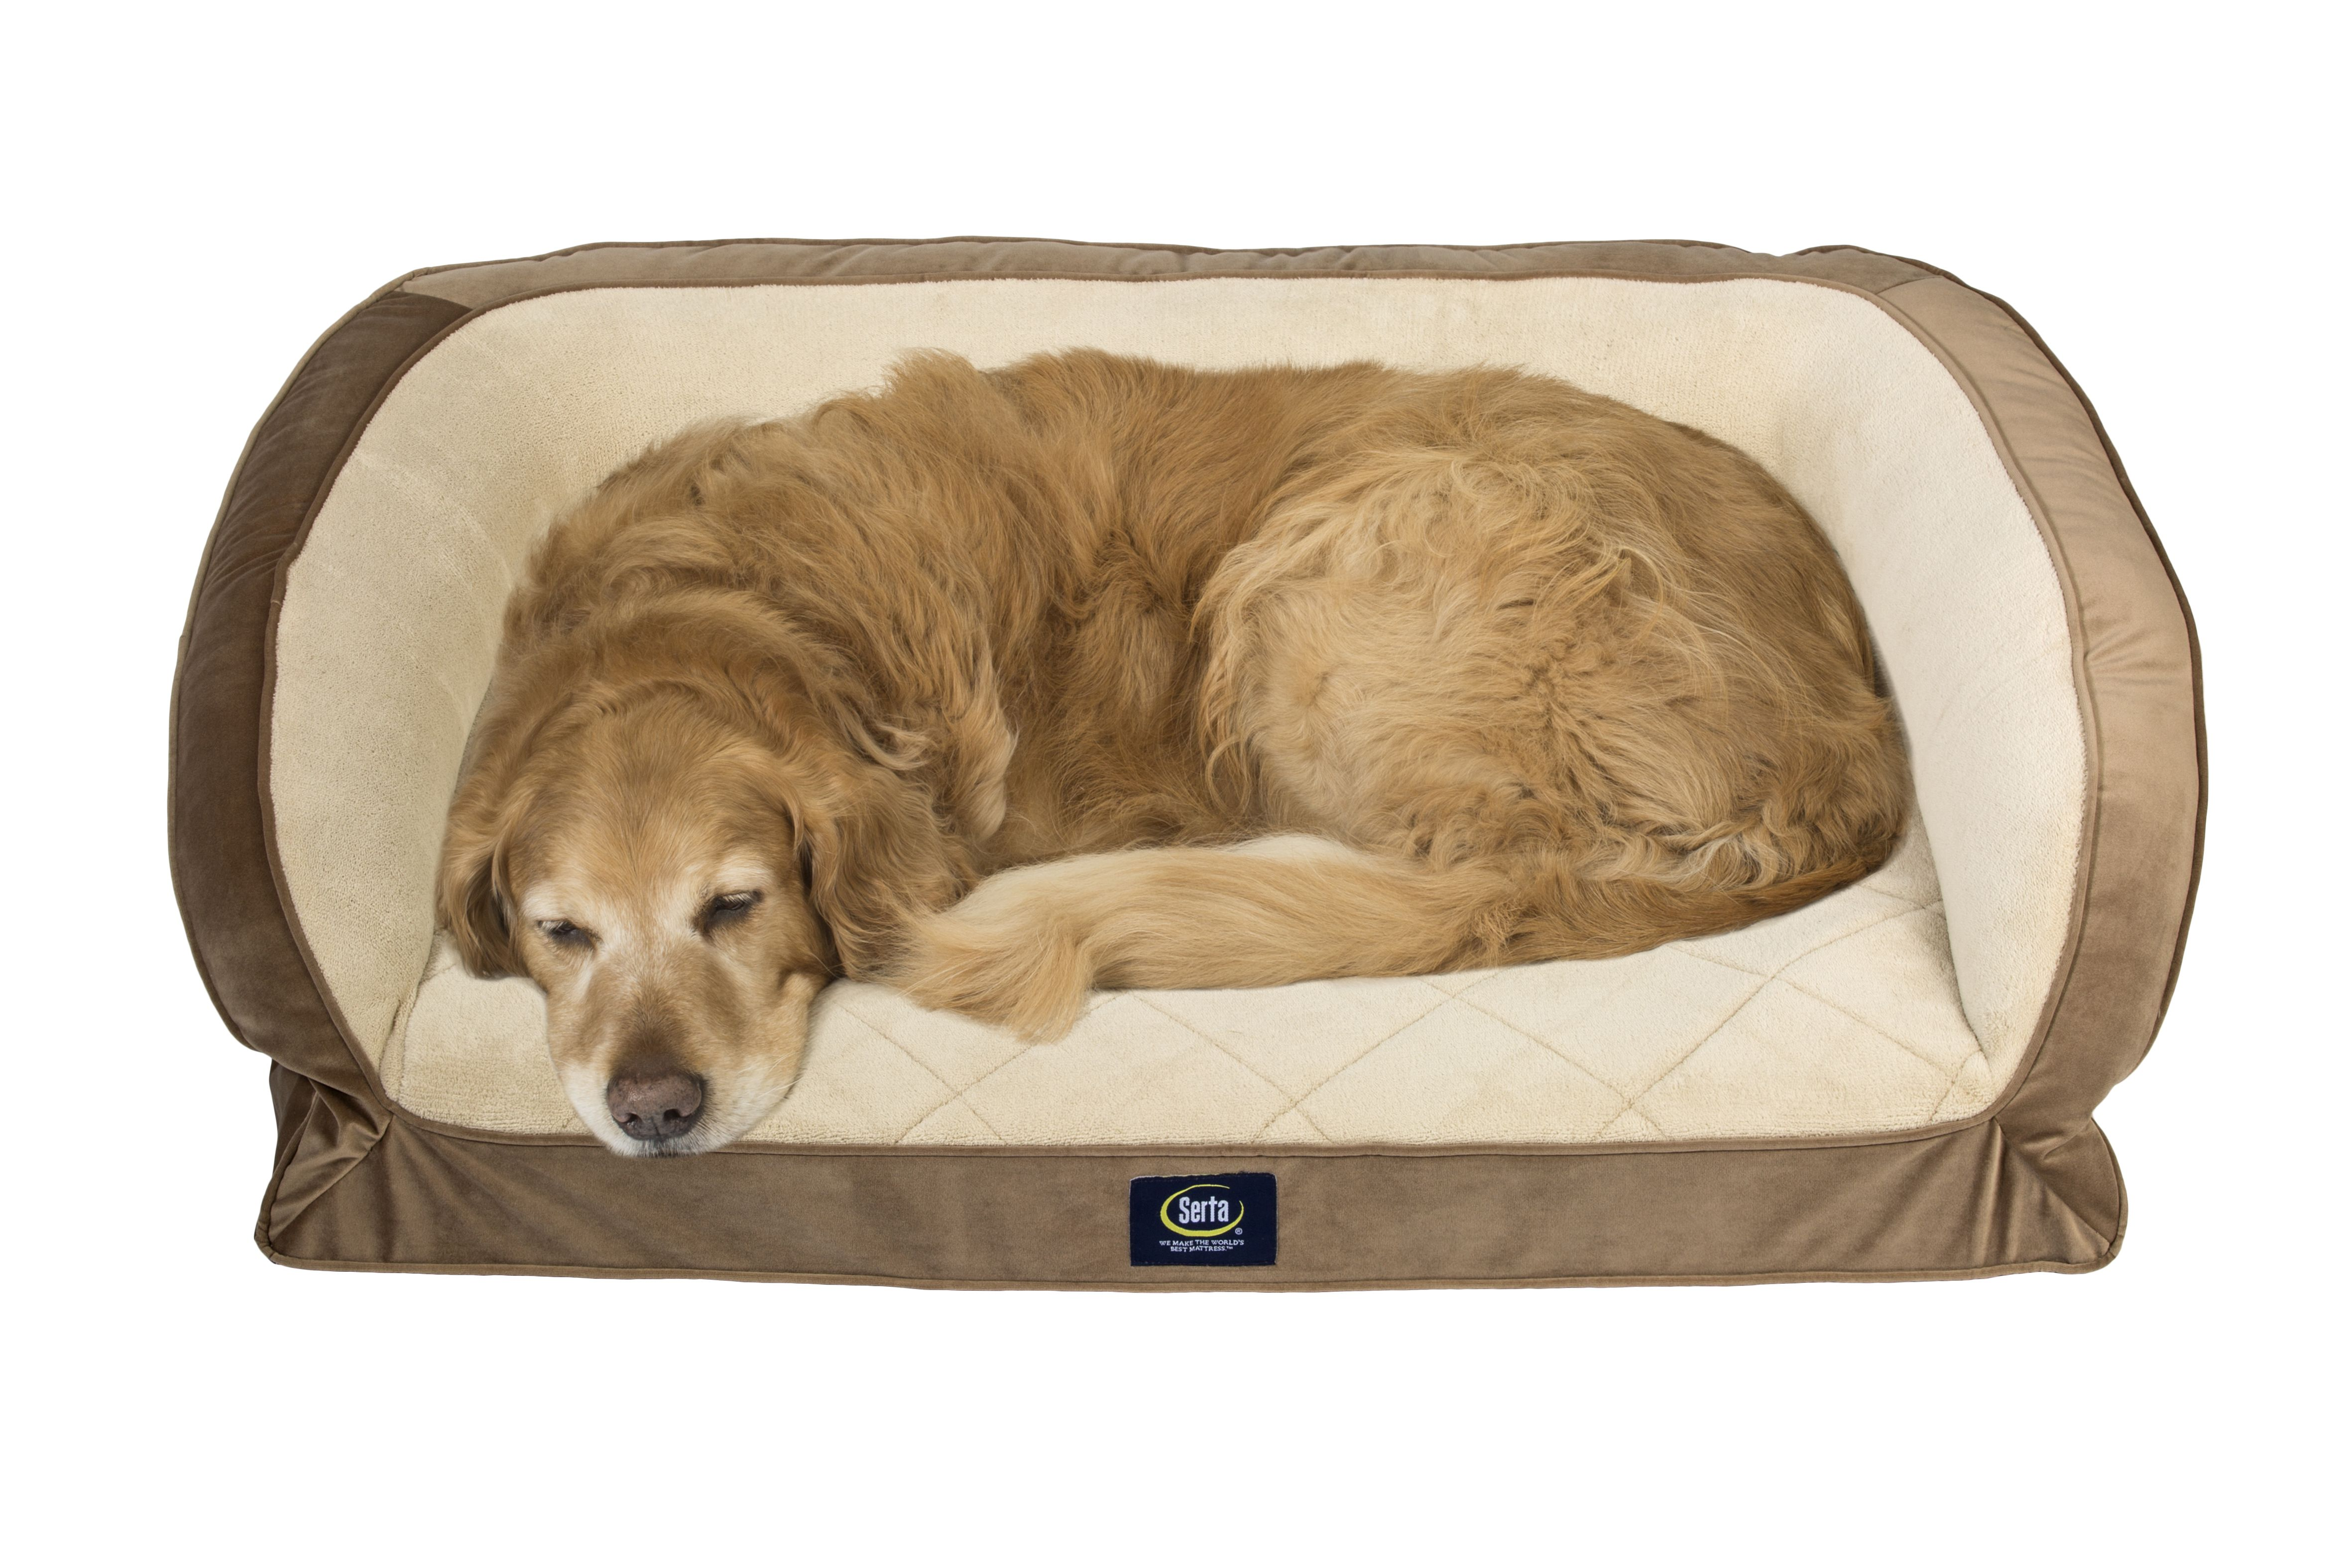 Serta Orthopedic Memory Foam Couch Pet Dog Bed Large Color May Vary Walmart Com Couch Pet Bed Dog Pet Beds Dog Bed